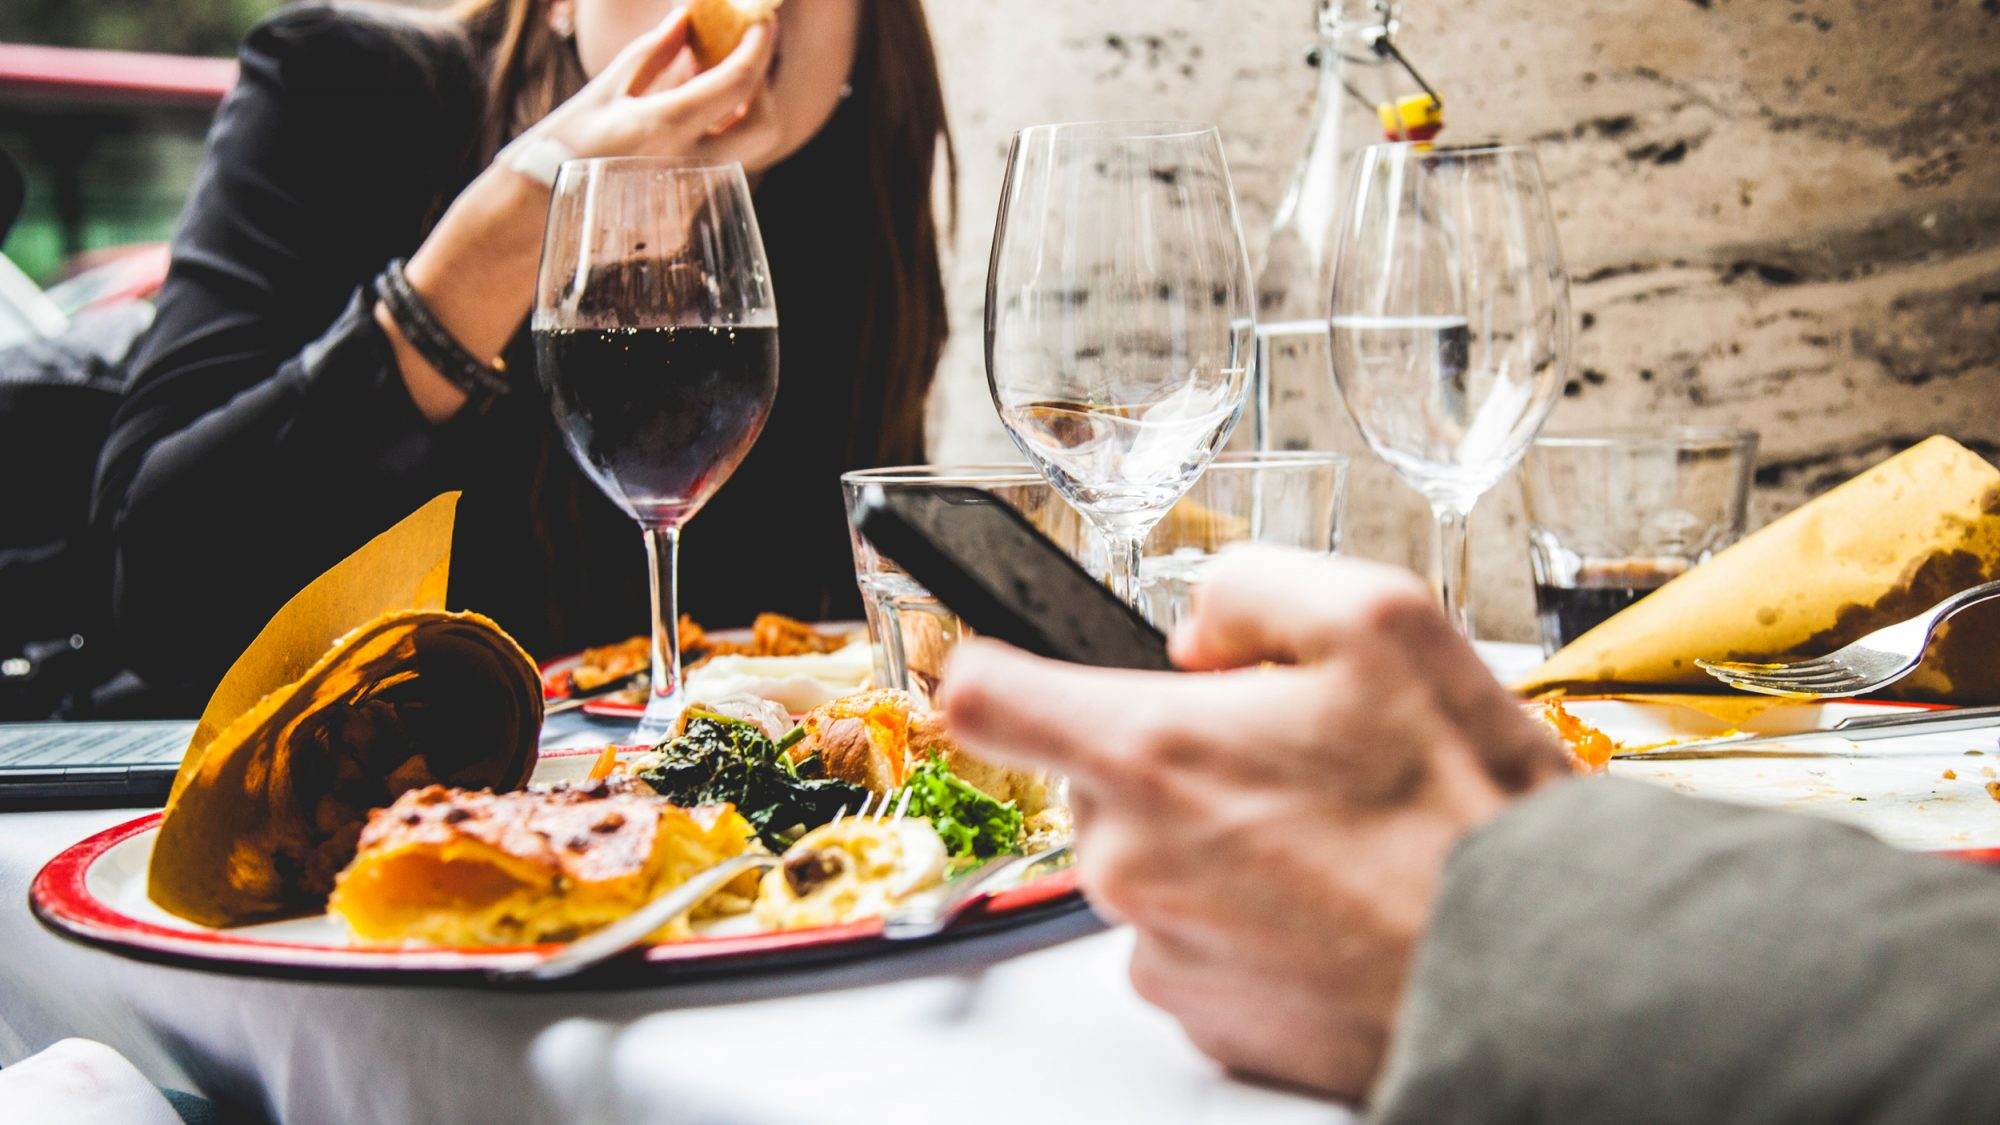 Restaurant Will Lock Up Cell Phones